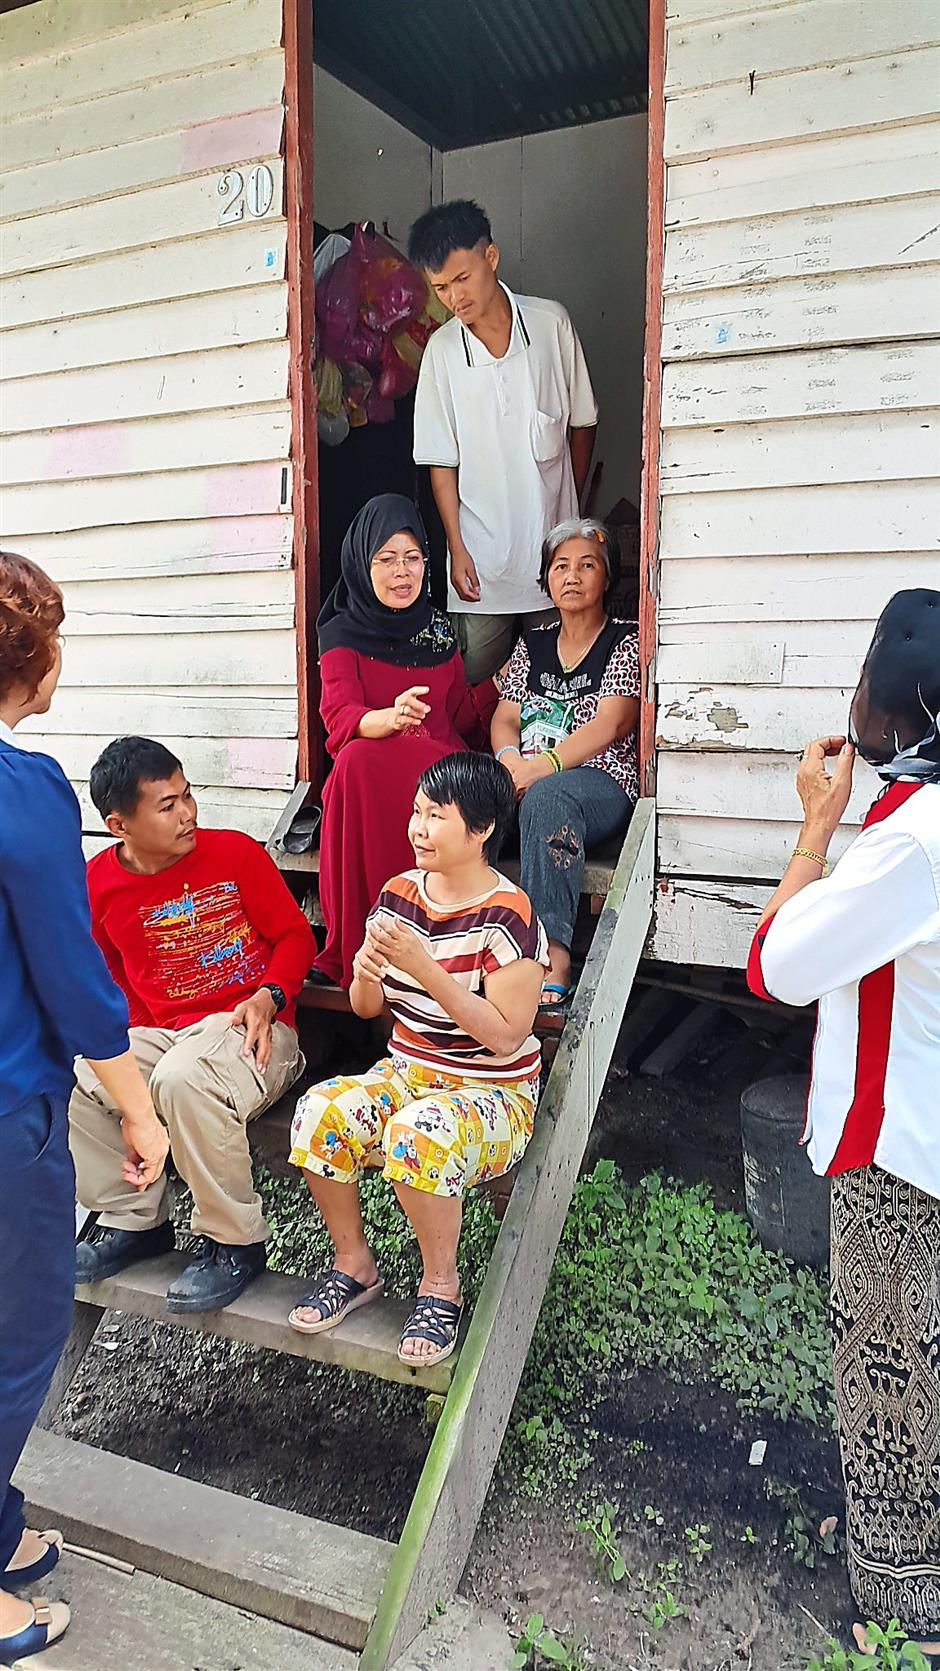 Sarawak Minister for women, family development and welfare Datuk Fatimah Abdullah visiting a family with mentally handicap children and land problem yesterday. Stephen pic